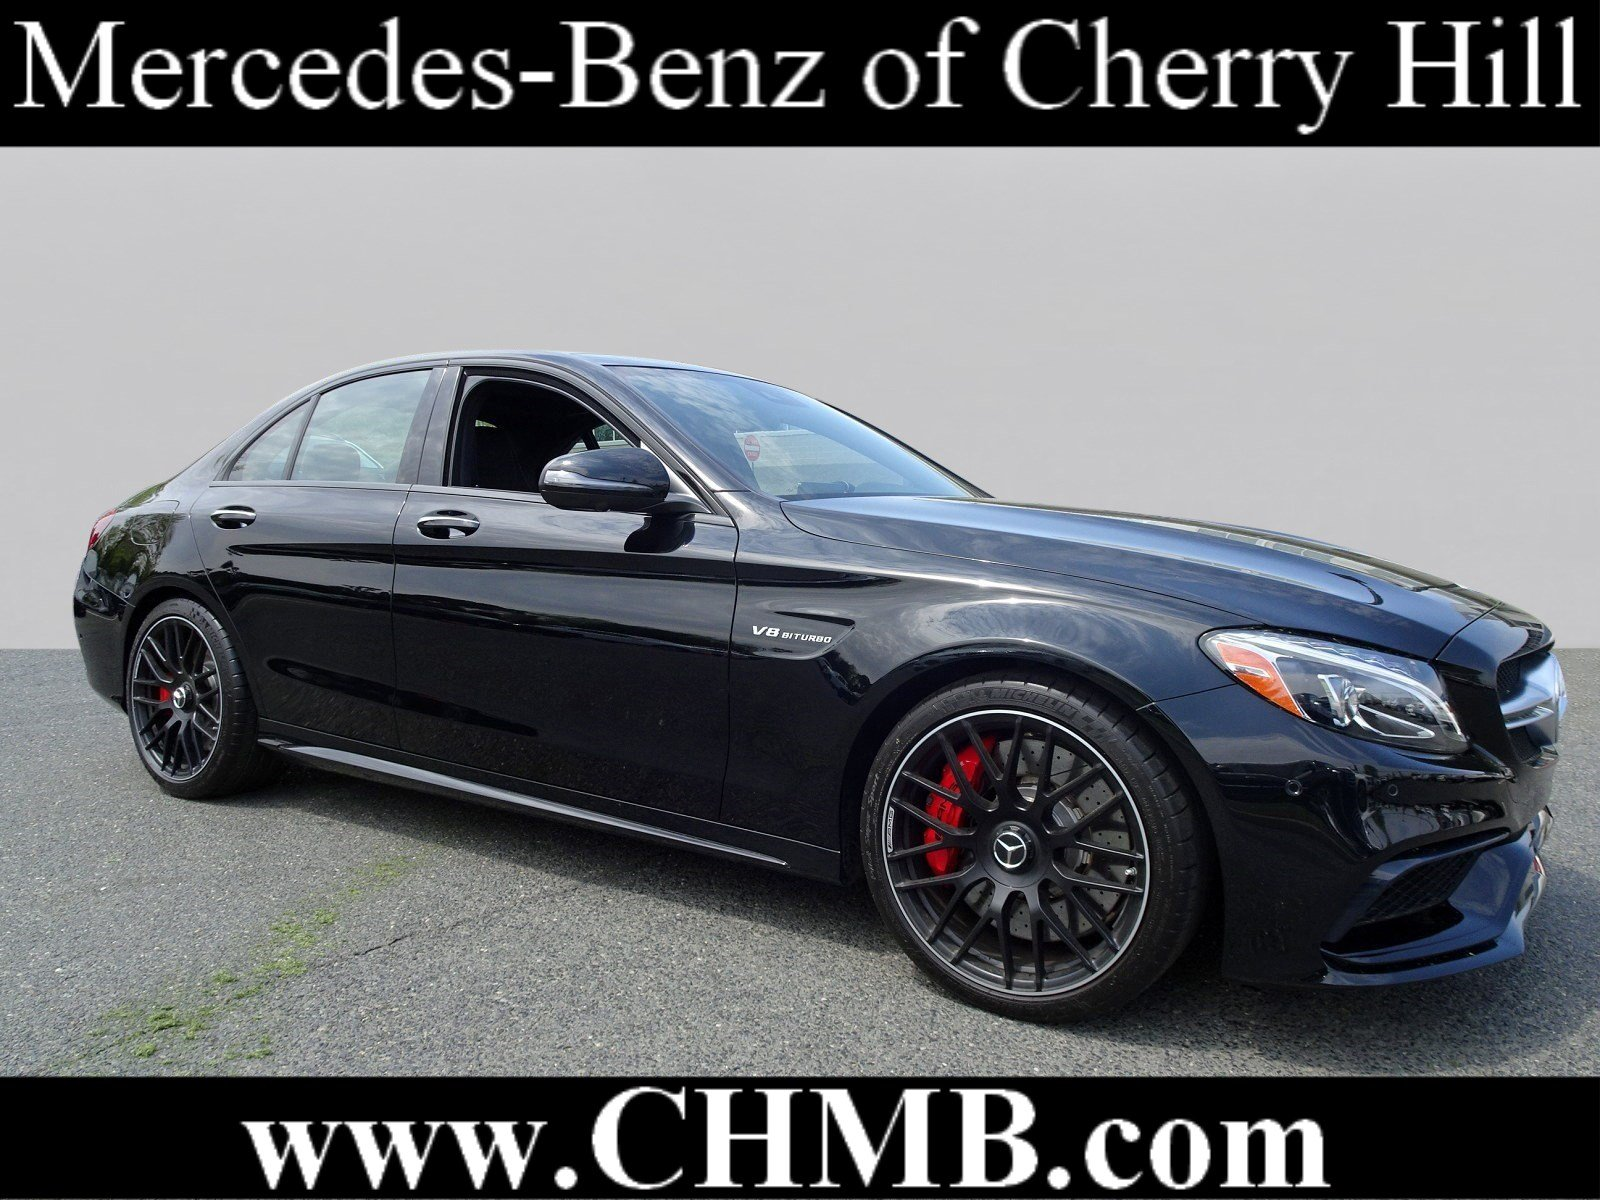 Mercedes Roadside Assistance >> New 2017 Mercedes-Benz C-Class AMG® C 63 S Sedan SEDAN in Cherry Hill #M-7-879 | Mercedes-Benz ...